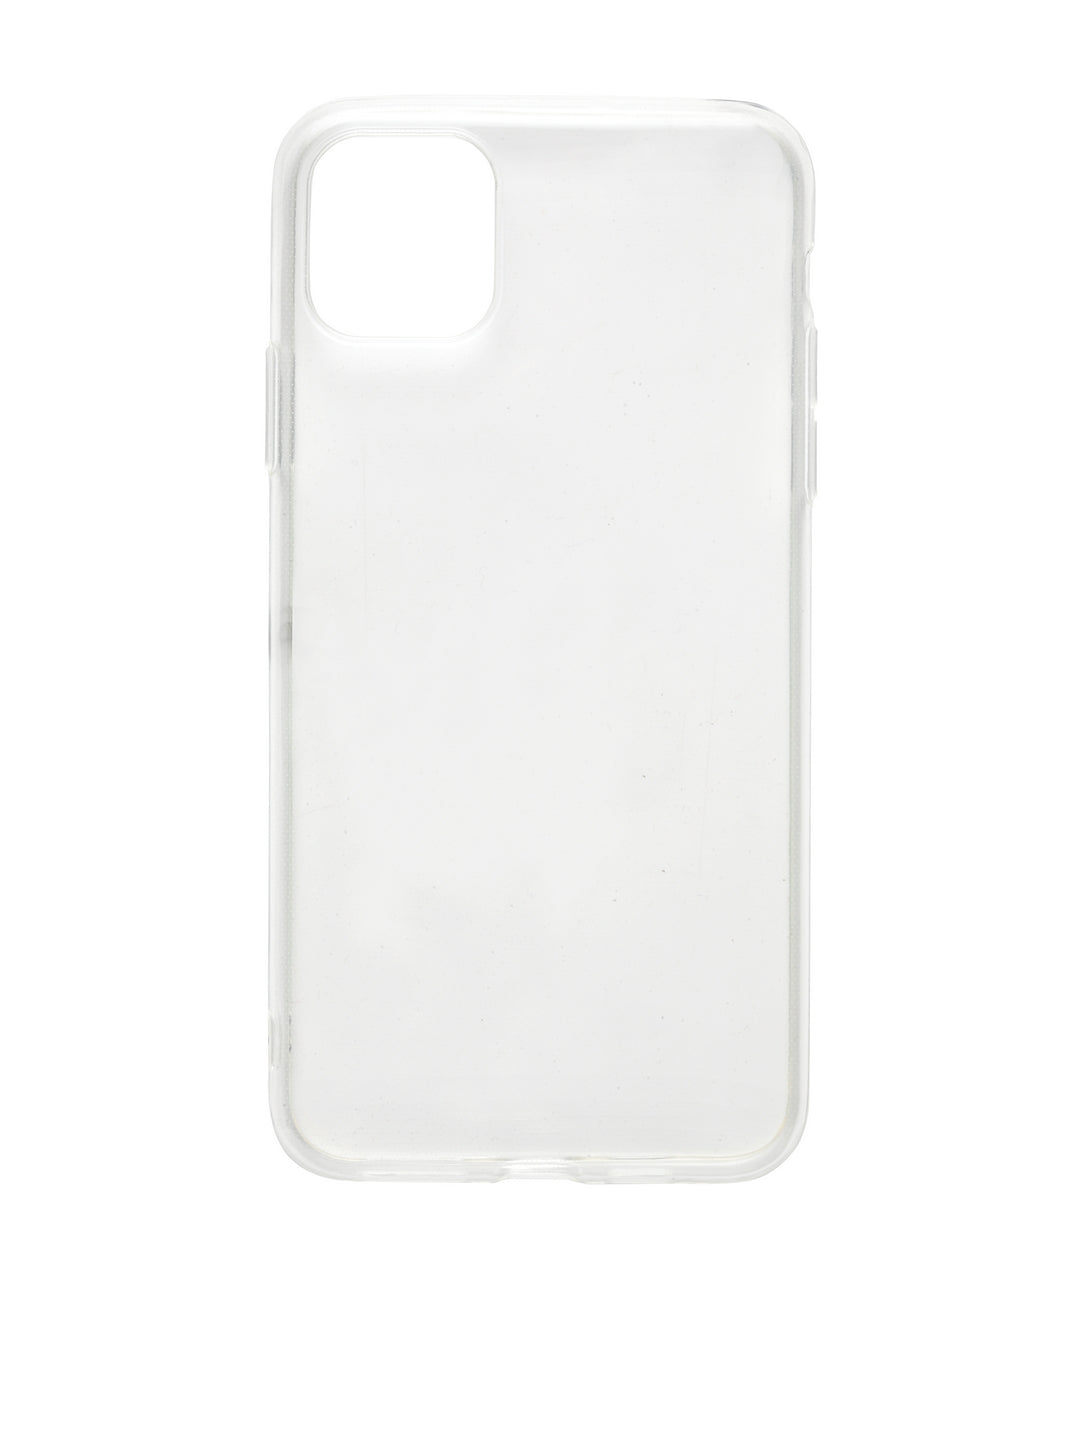 Transparent Clear Mobile Case For iPhone 11 / 11 Pro / 11 Pro Max